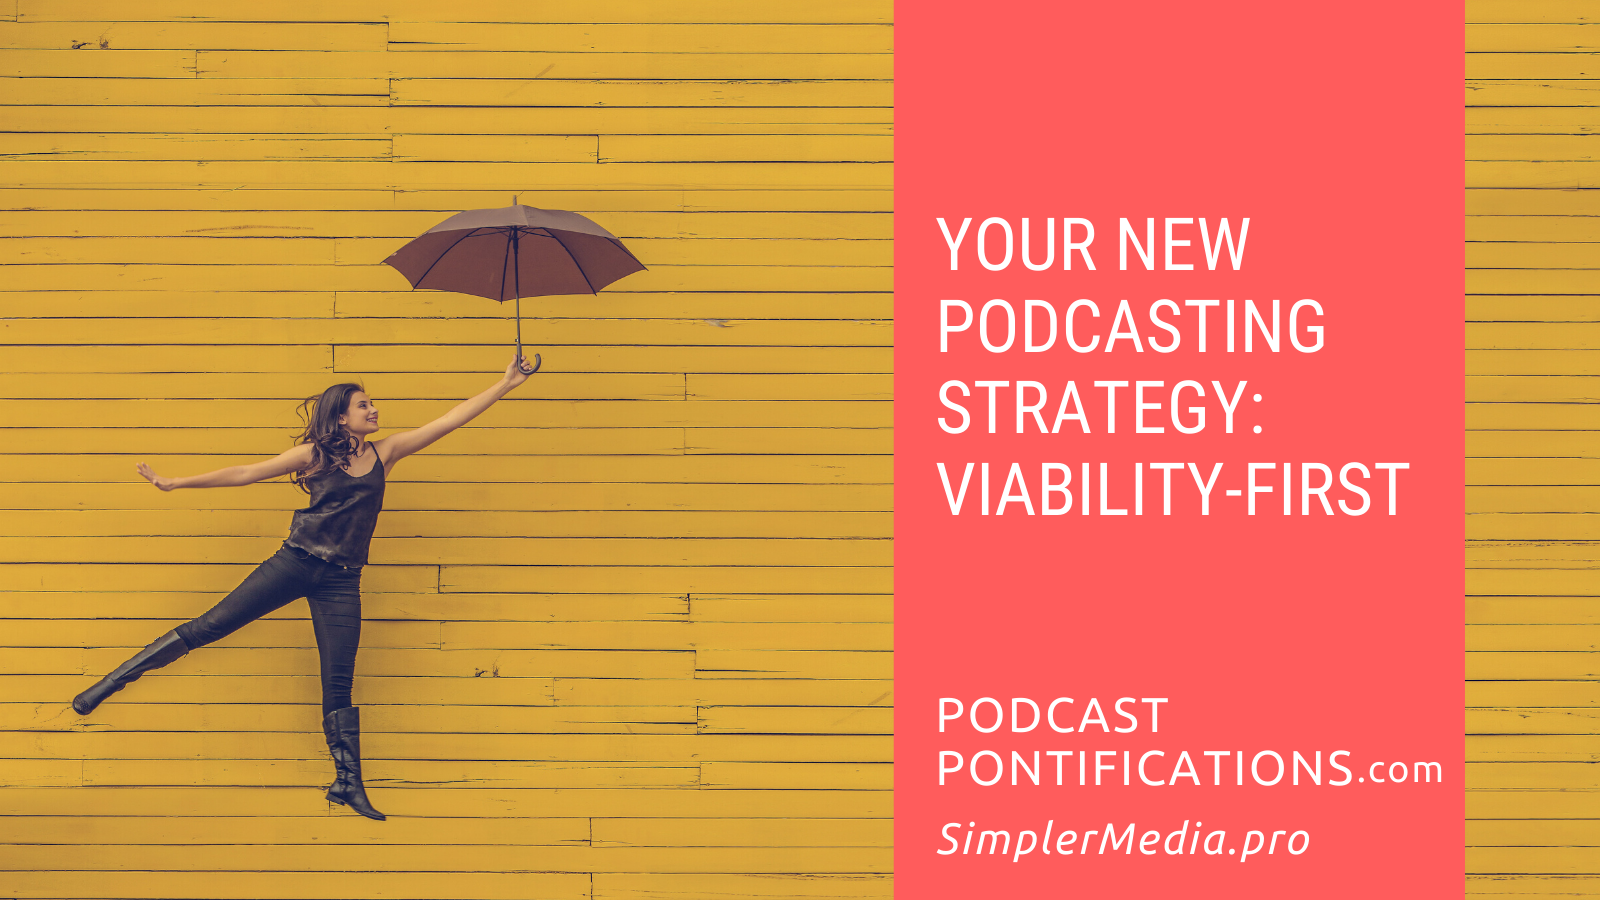 Your New Podcasting Strategy: Viability-First